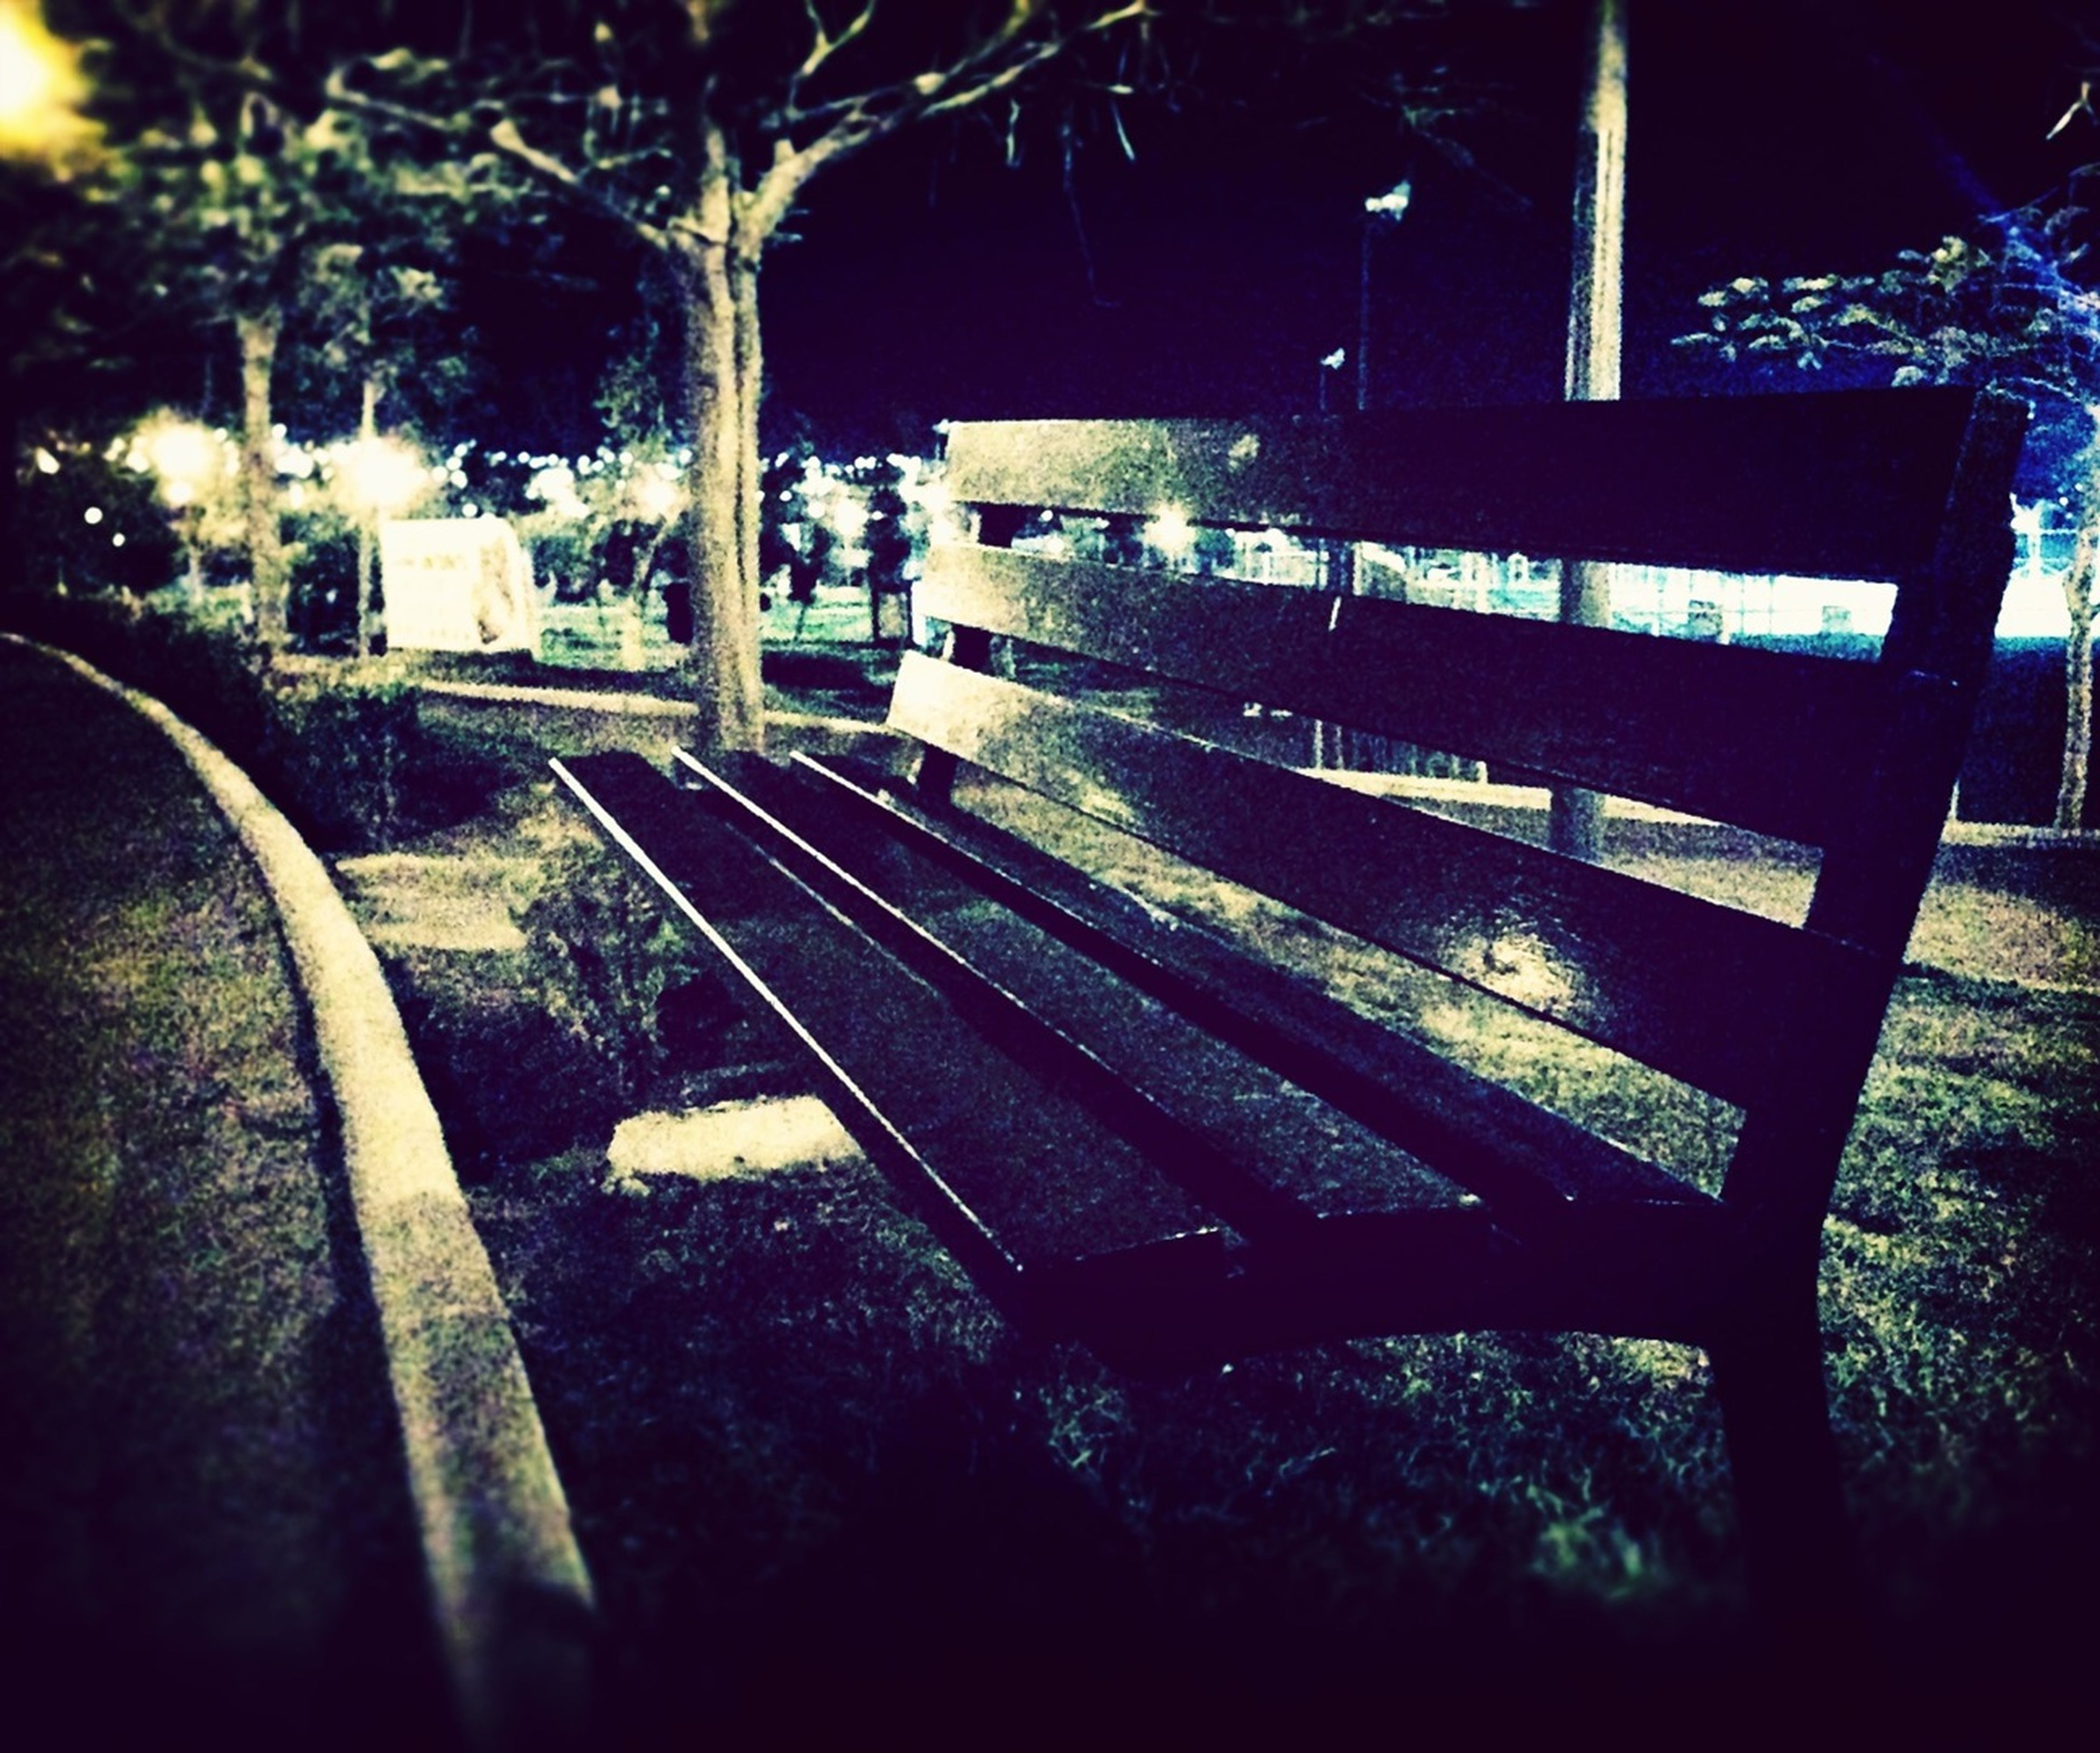 tree, transportation, built structure, night, architecture, shadow, street, sunlight, building exterior, outdoors, land vehicle, empty, no people, illuminated, mode of transport, growth, absence, bridge - man made structure, railing, dark